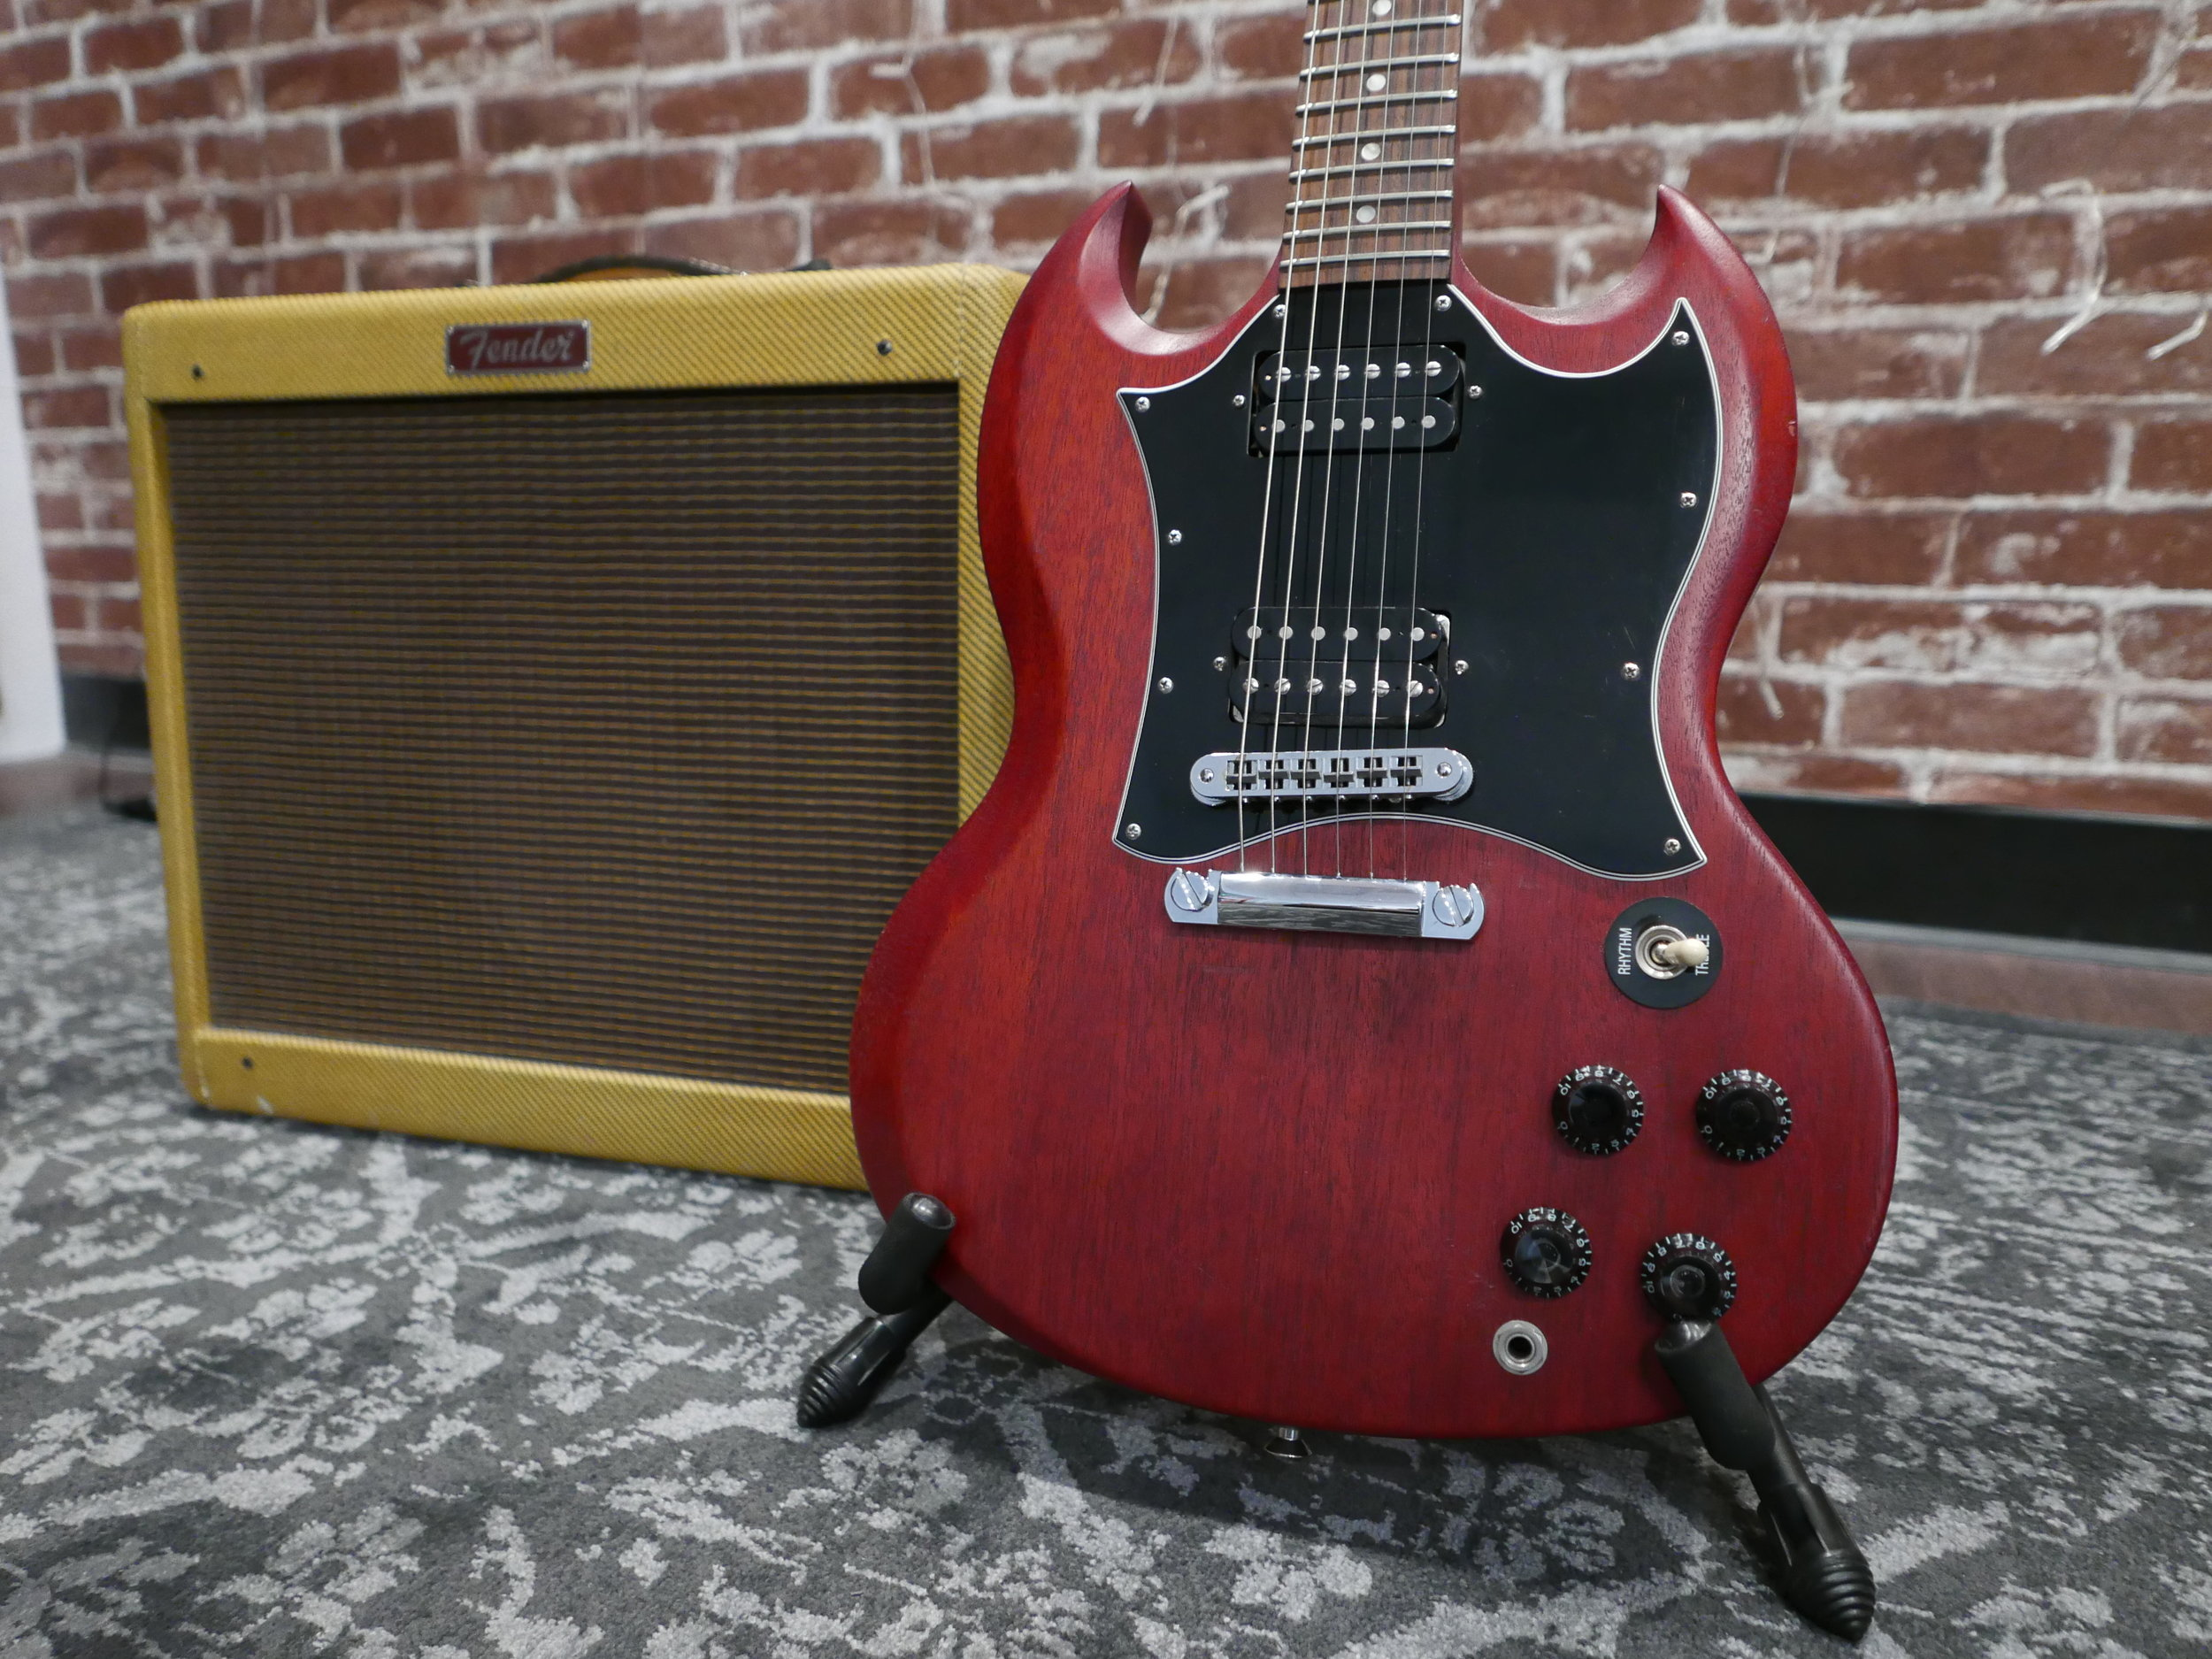 2010 Gibson SG Special Fade - On Sale: $785!